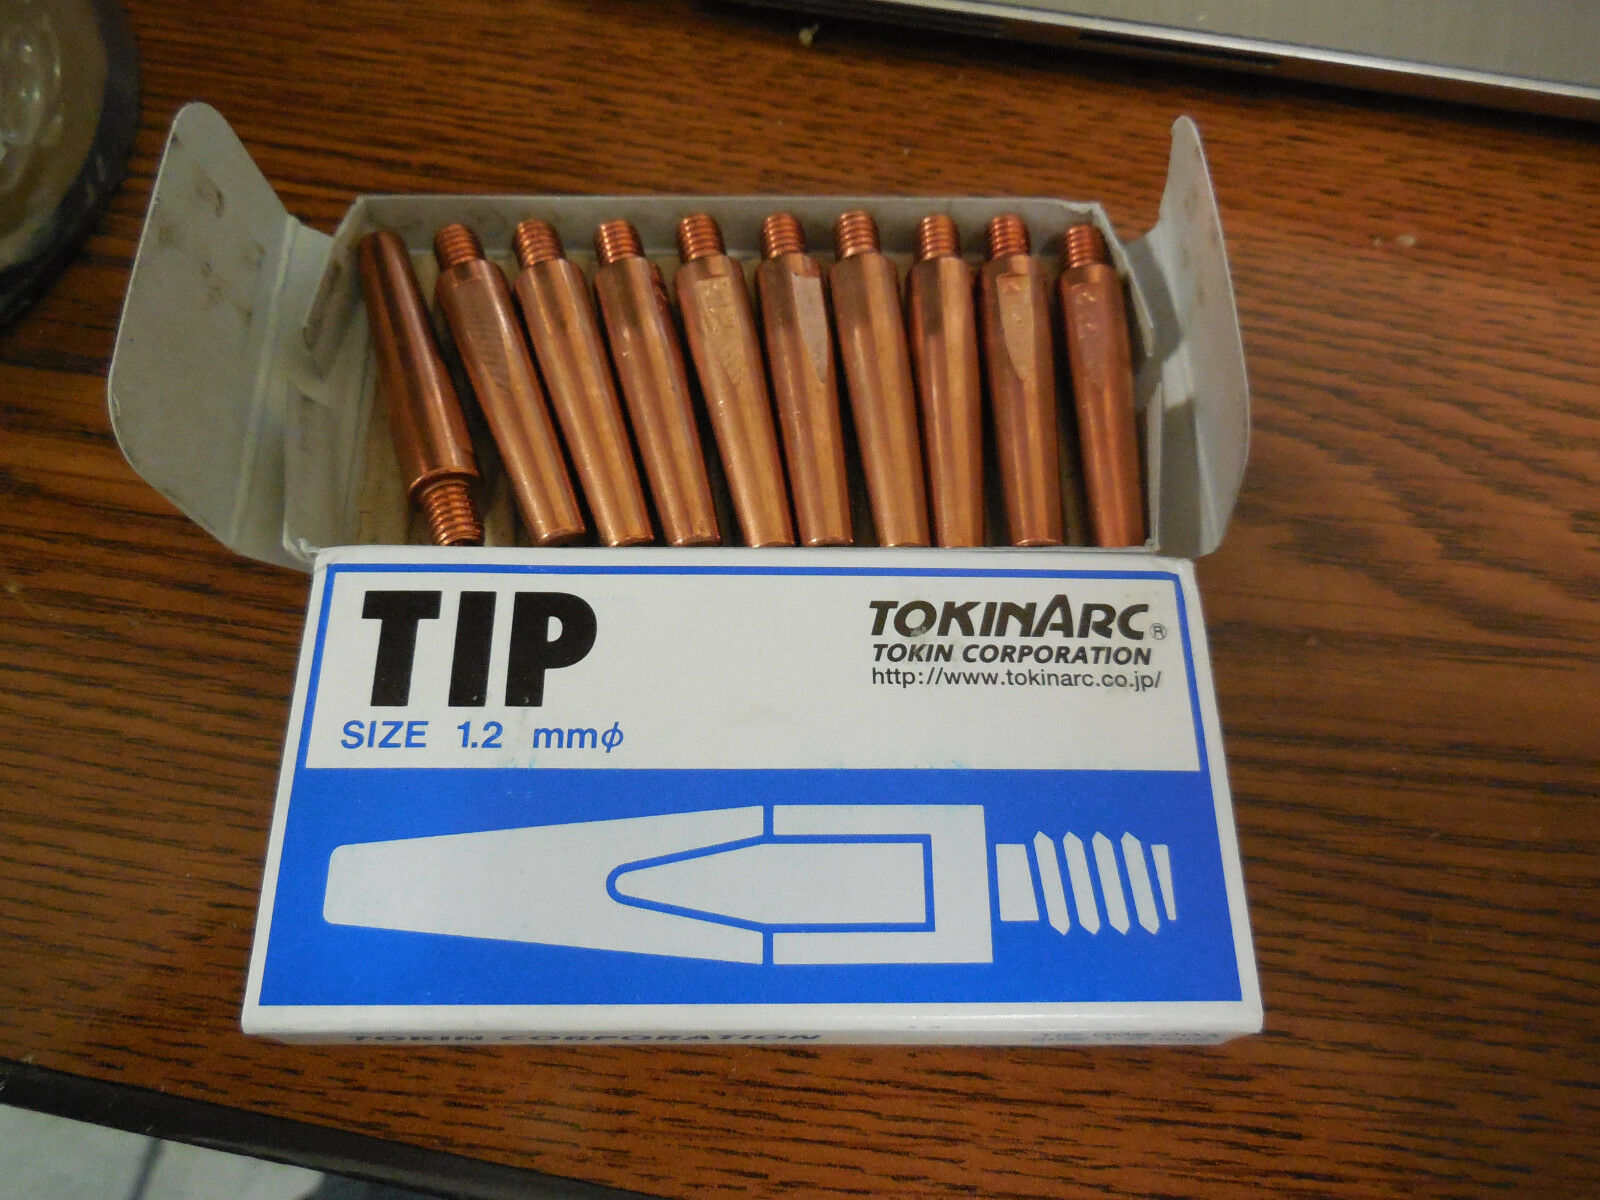 contact tips 1.2mm for MIG welding 002003 Tokinarc 10 Genuine Tokin